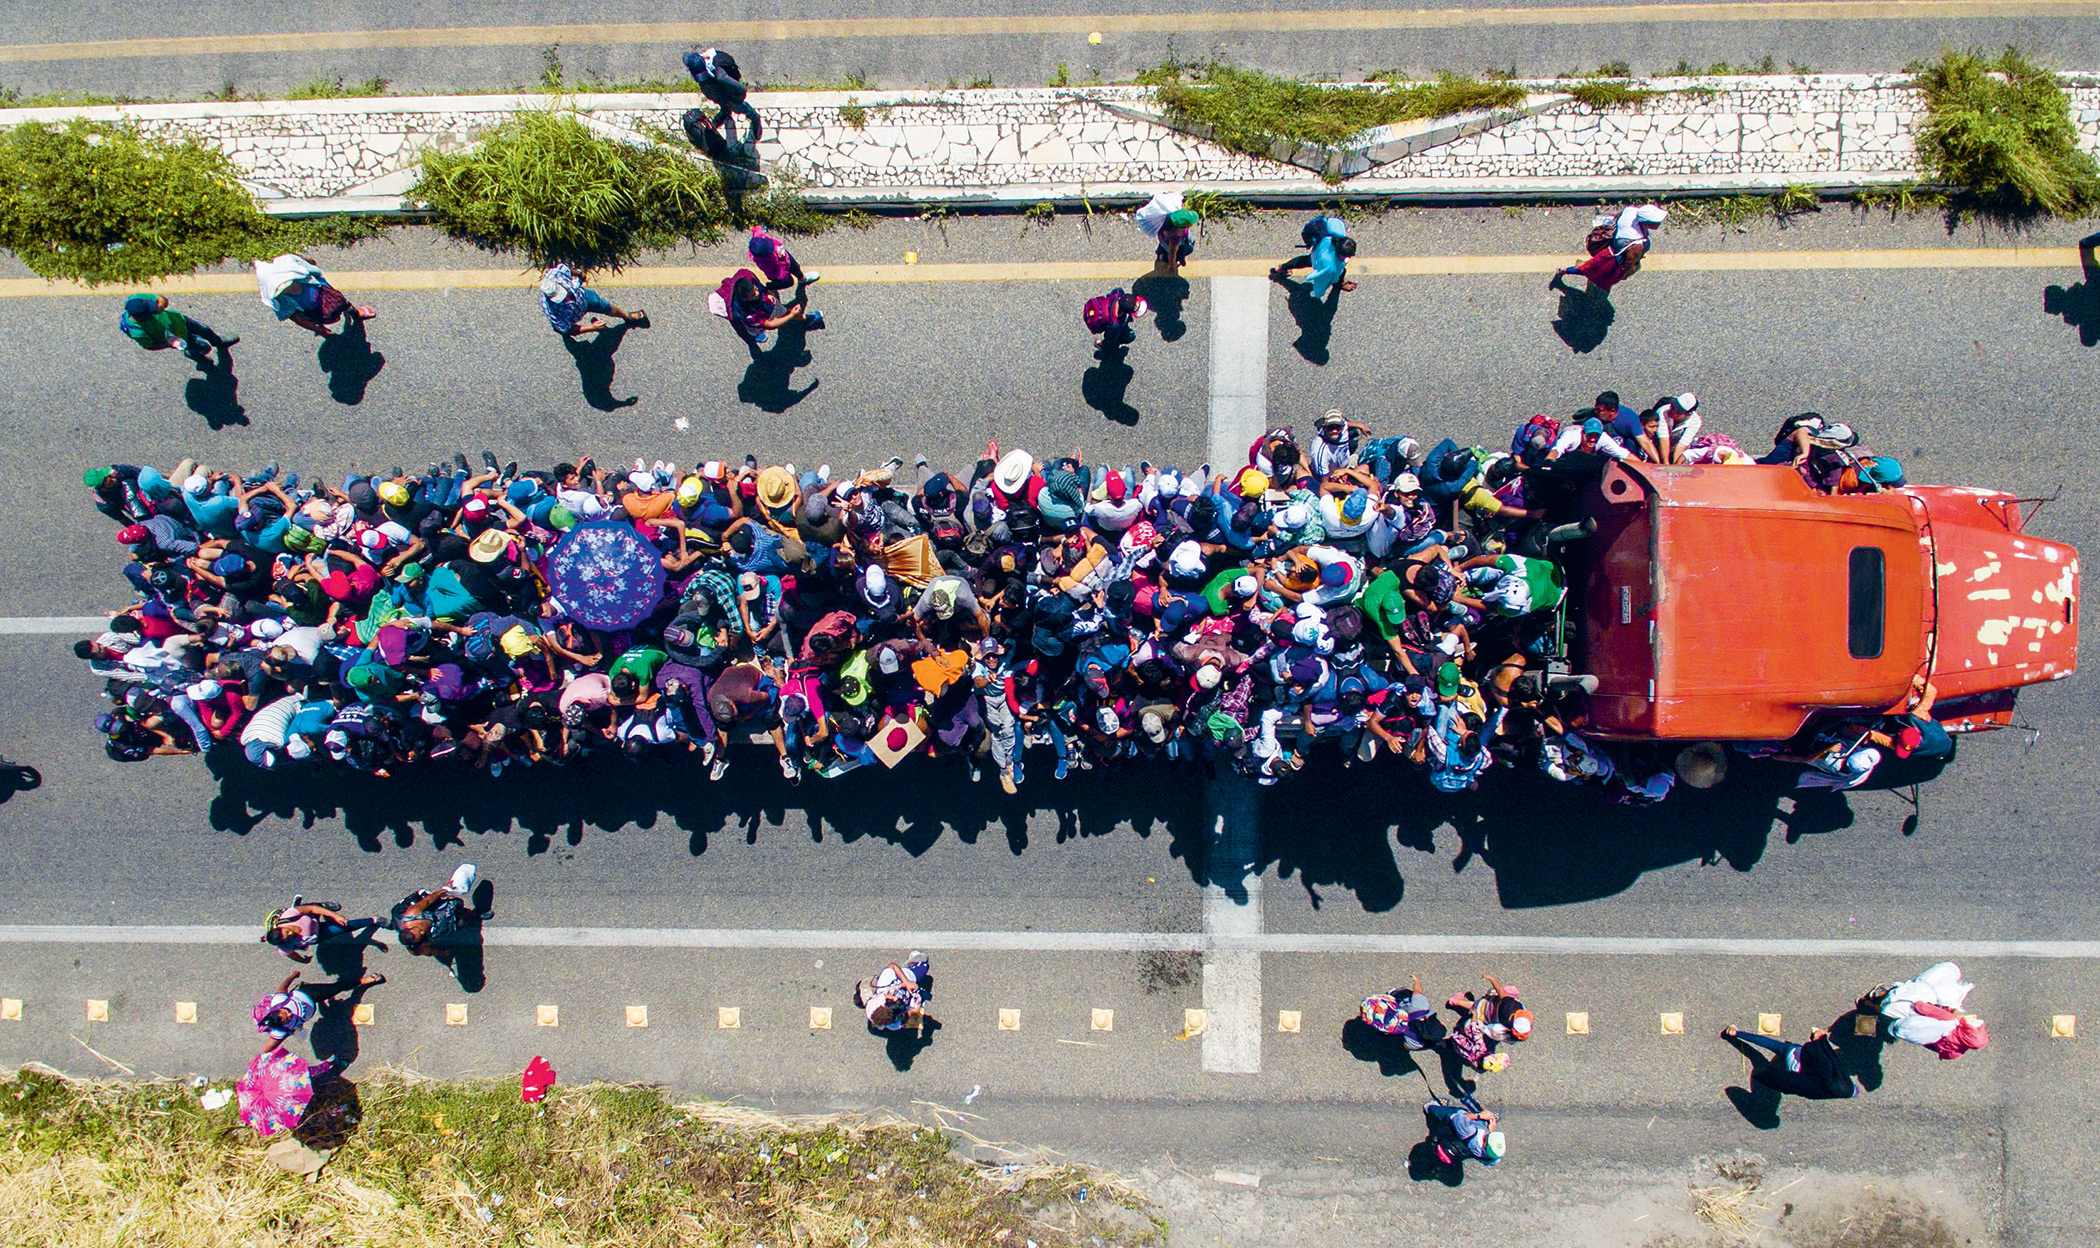 The view from above: Hondurans last year taking part in a caravan heading towards the US border. US policy toward Honduras will set new caravans in motion.